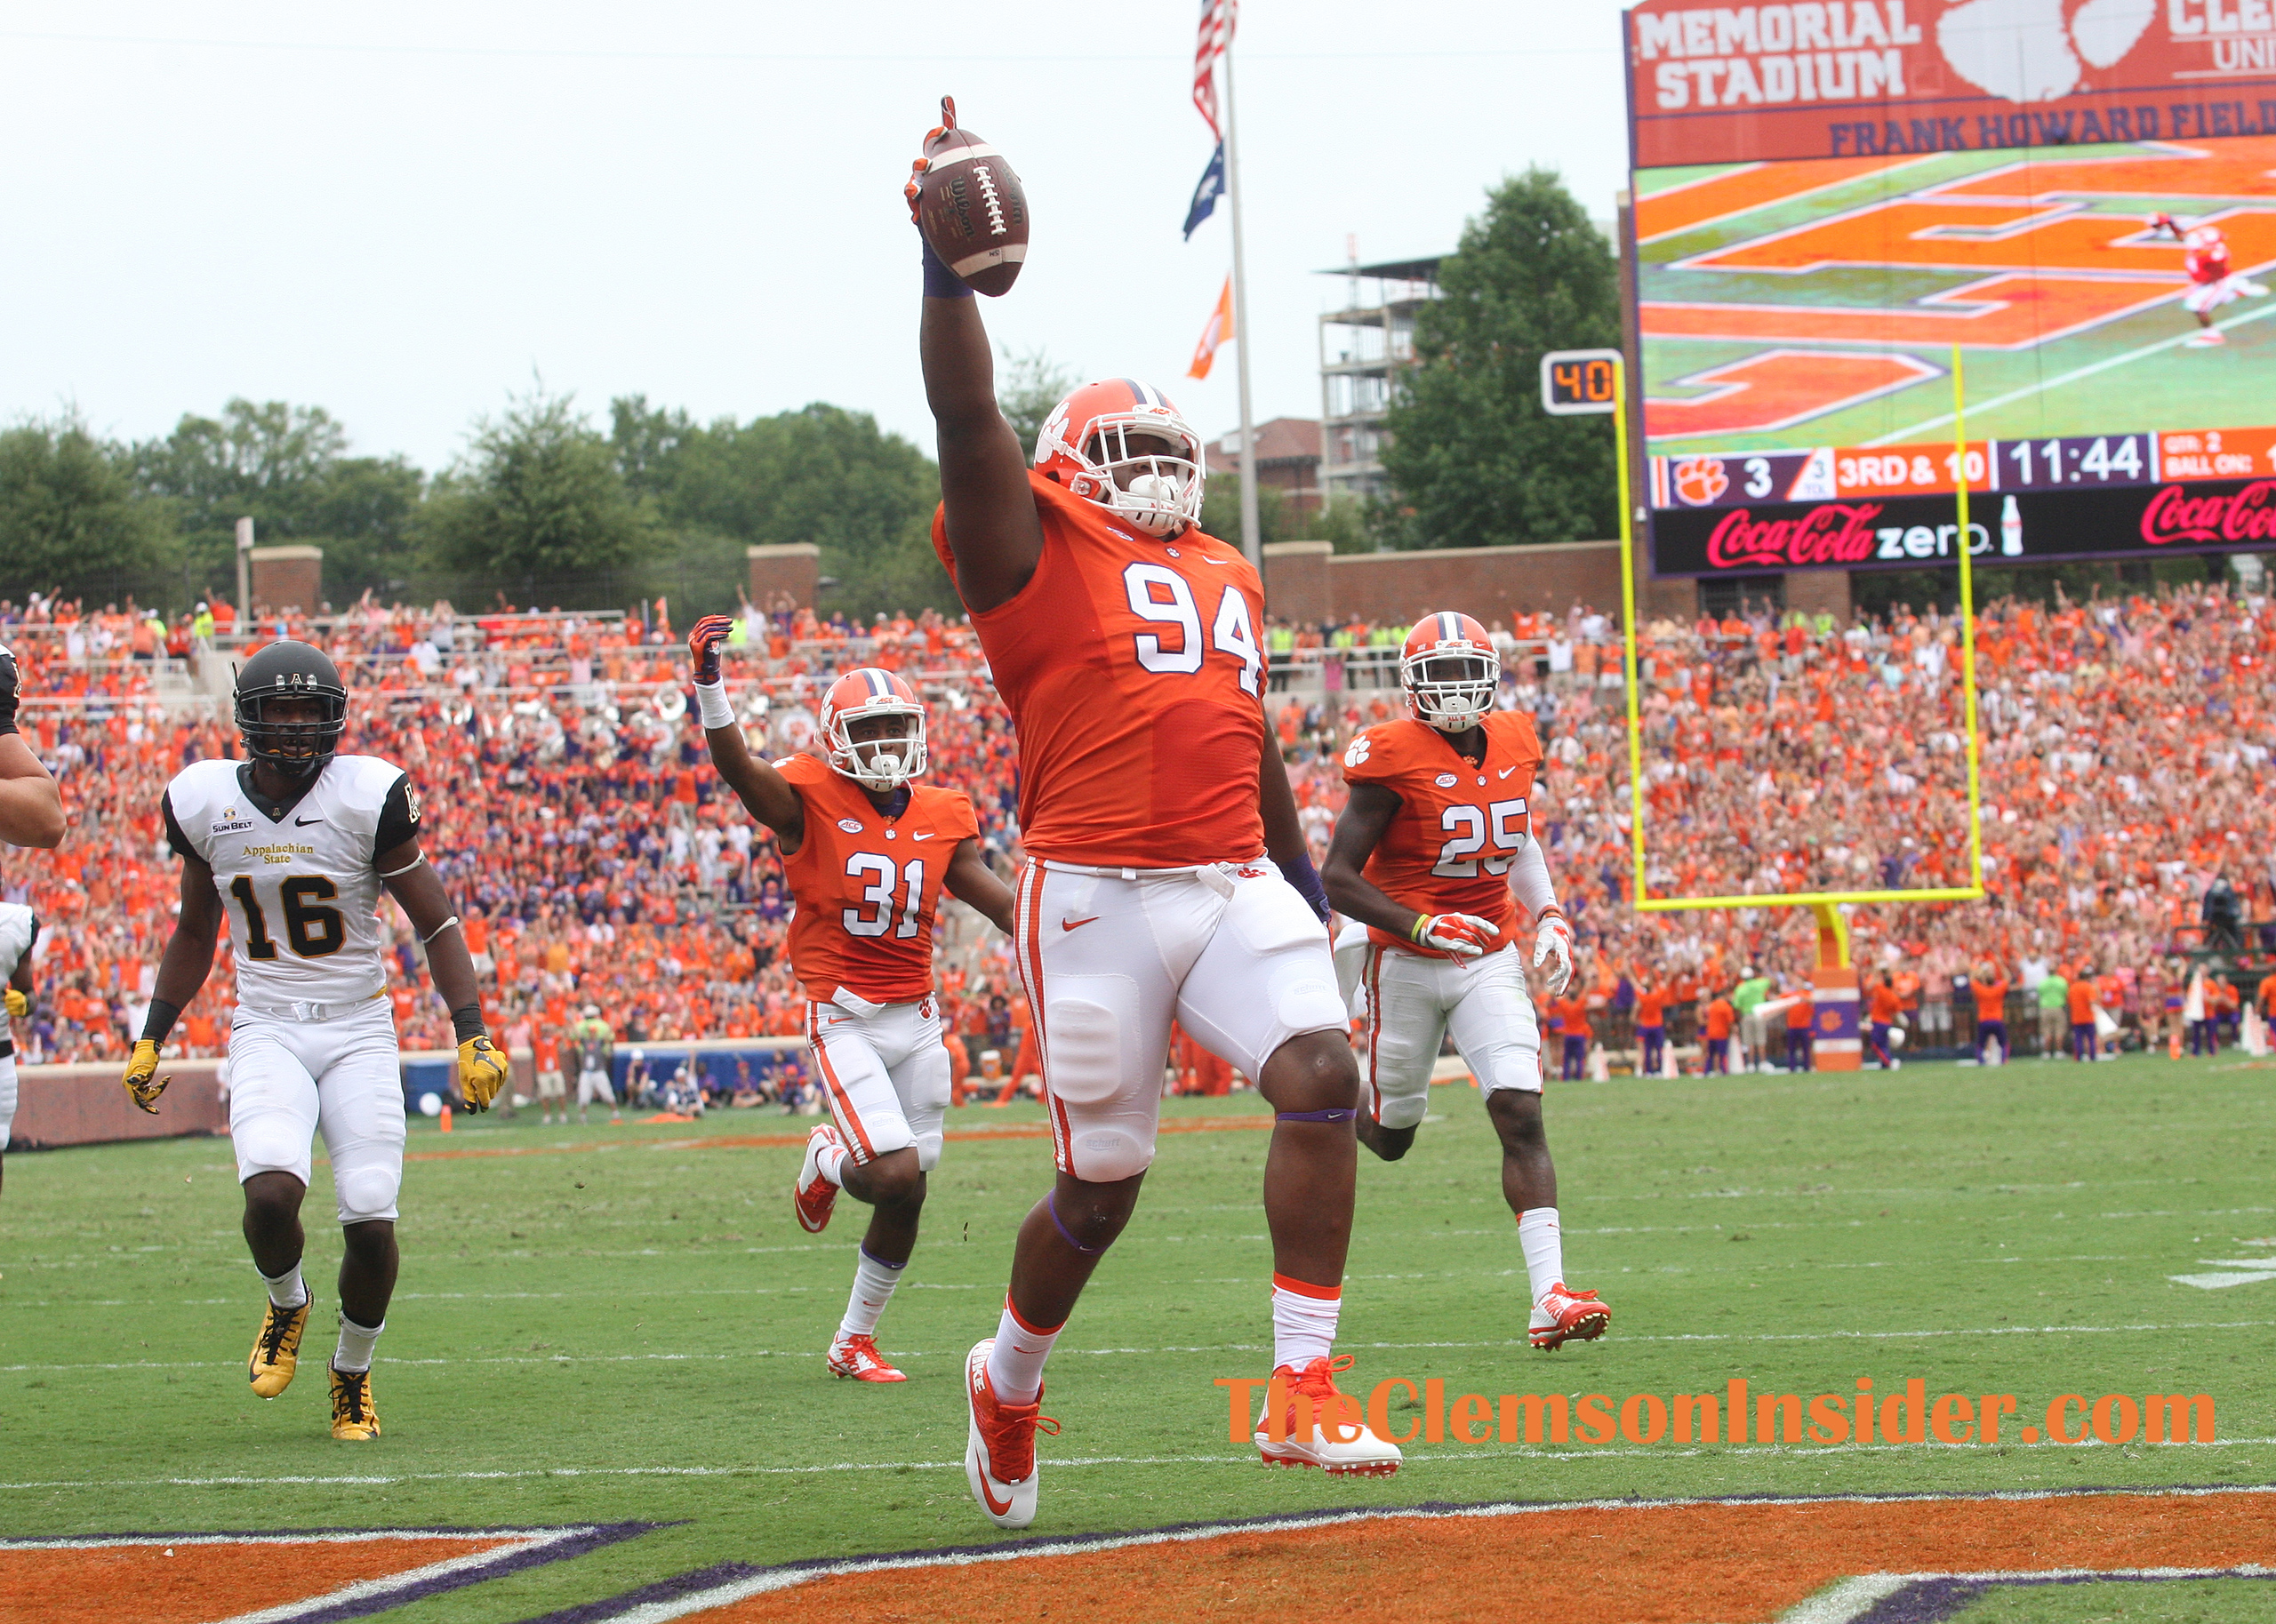 Clemson defensive tackle Carlos Watkins (94) returns an interception against Appalachian State for a touchdown during the 2nd quarter Saturday, September 12, 2015 at Clemson's Memorial Stadium.